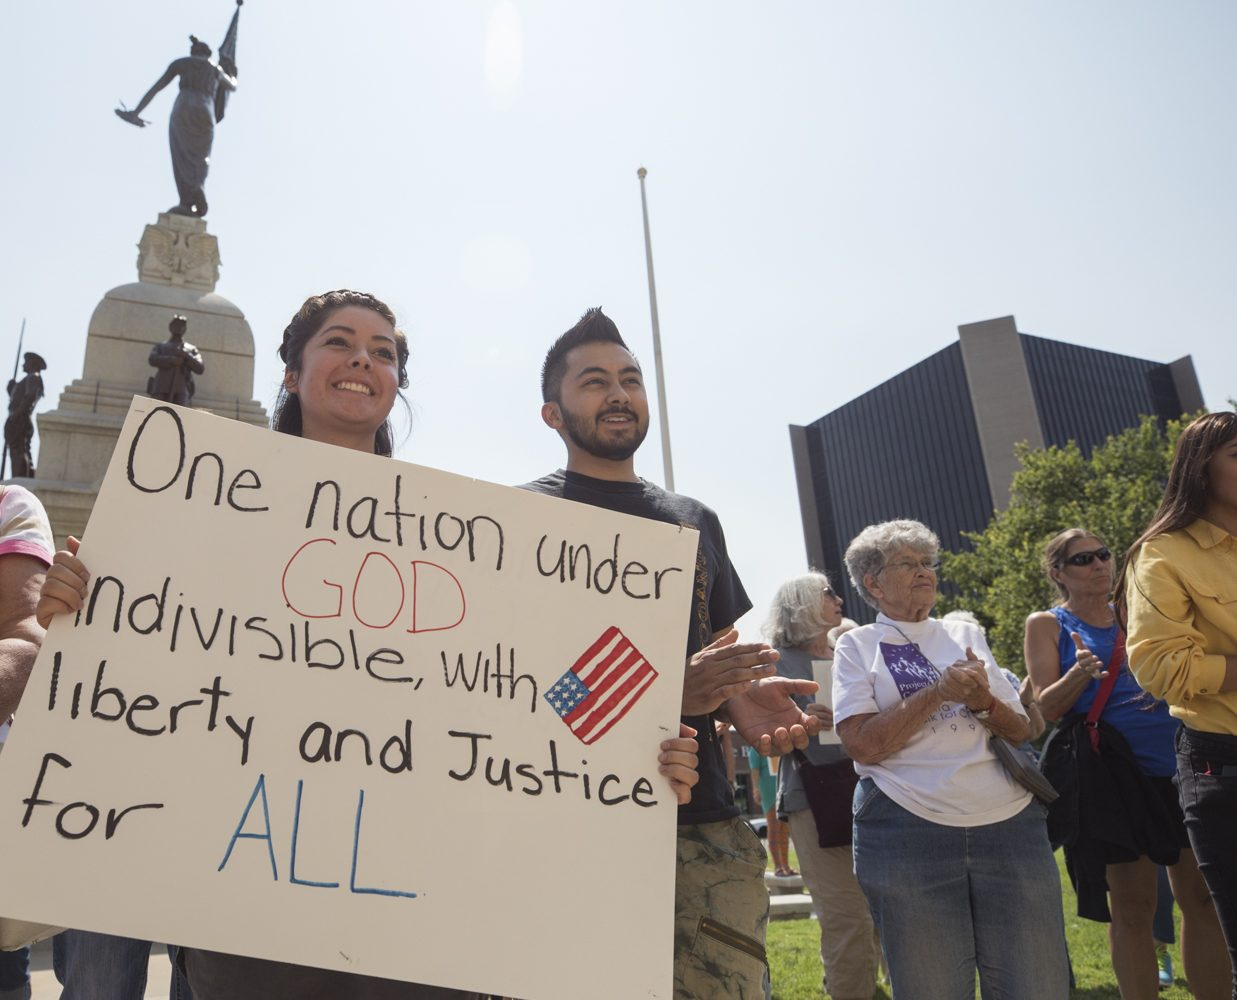 Wichita+State+Students+Karen+Segura+and+Jaime+Segura+hold+up+a+sign+and+applaud+during+the+%23HereToStay+support+event+held+at+the+Historical+County+Courthouse+on+Tuesday+afternoon.+%28Sept.+5%2C+2017%29